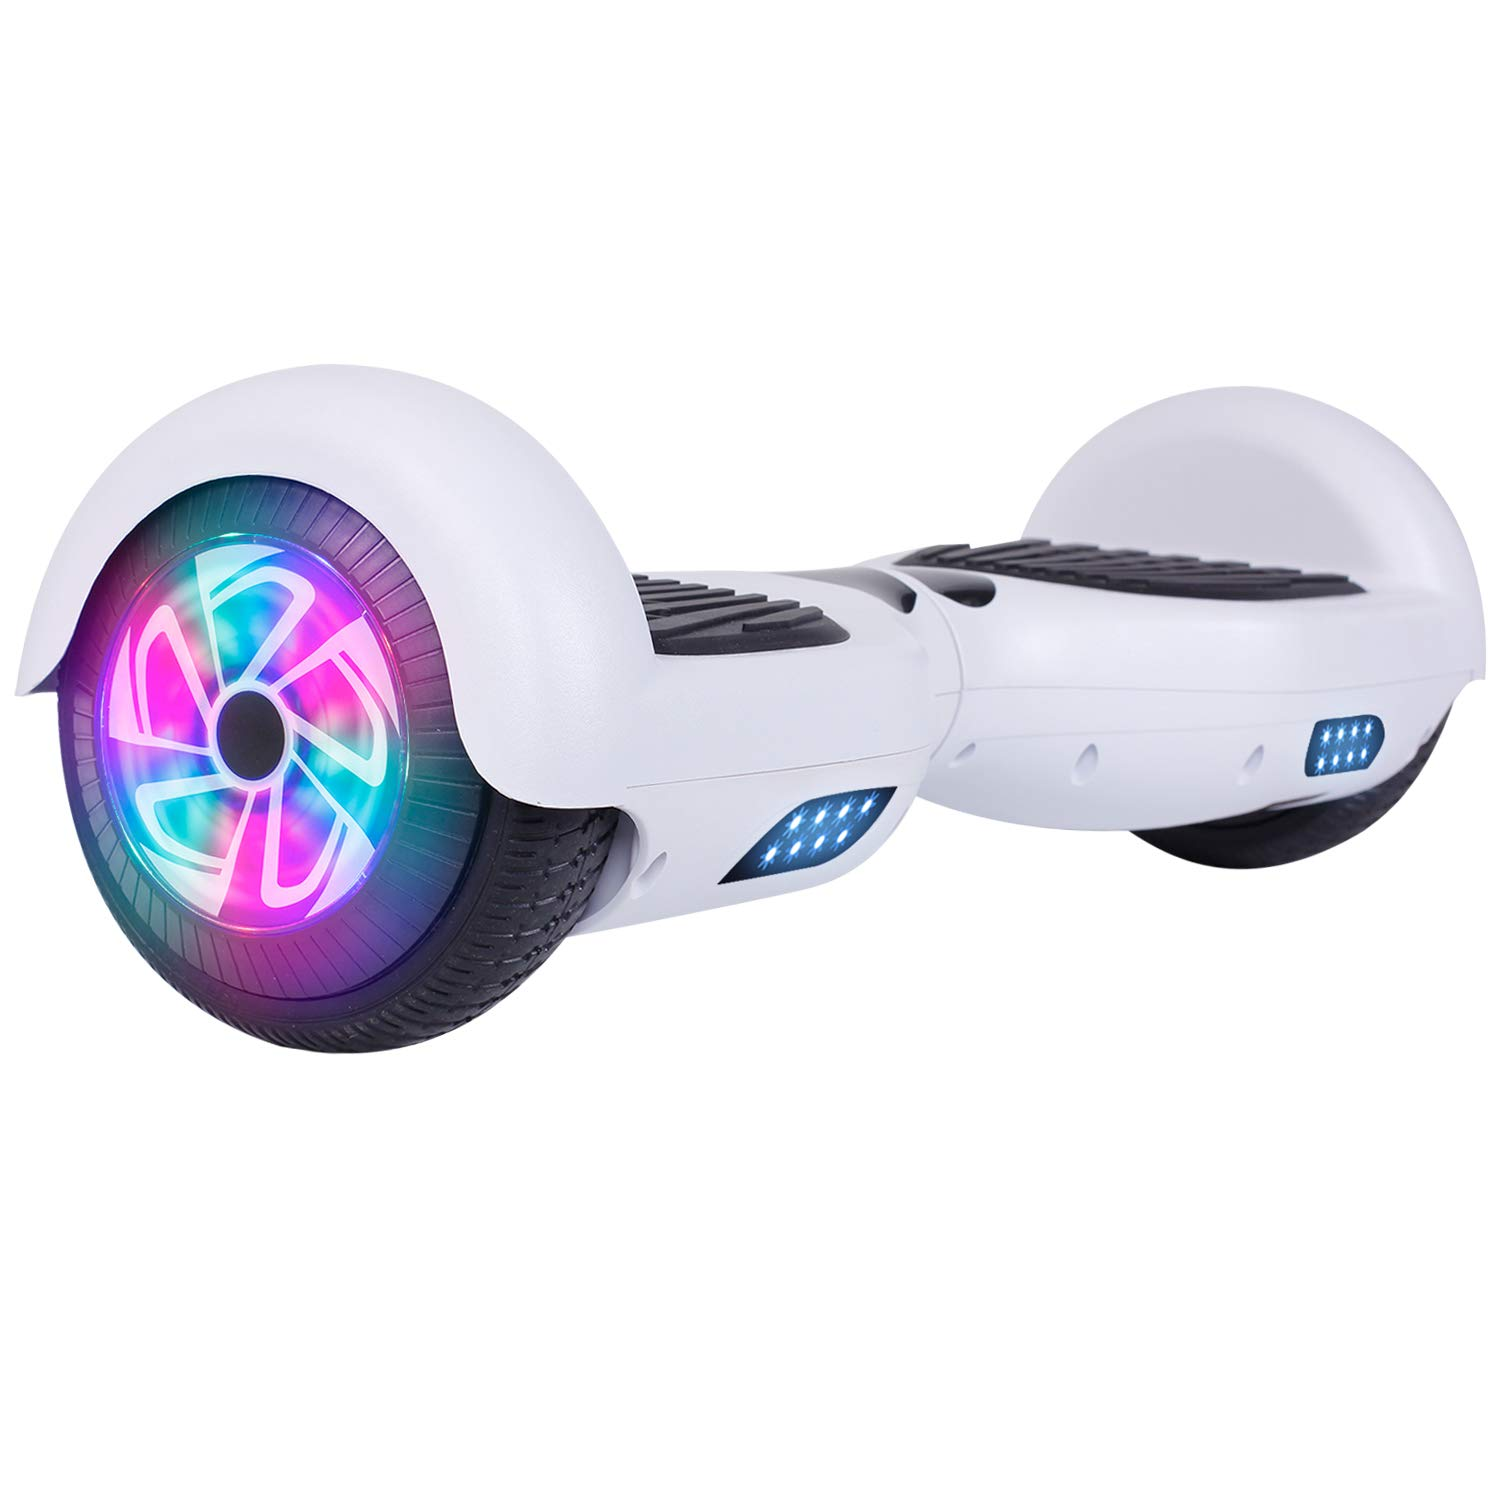 "LIEAGLE Hoverboard, 6.5"" Self Balancing Scooter Hover Board with Bluetooth, UL2272 Certified Wheels LED Lights for Adult Kids"